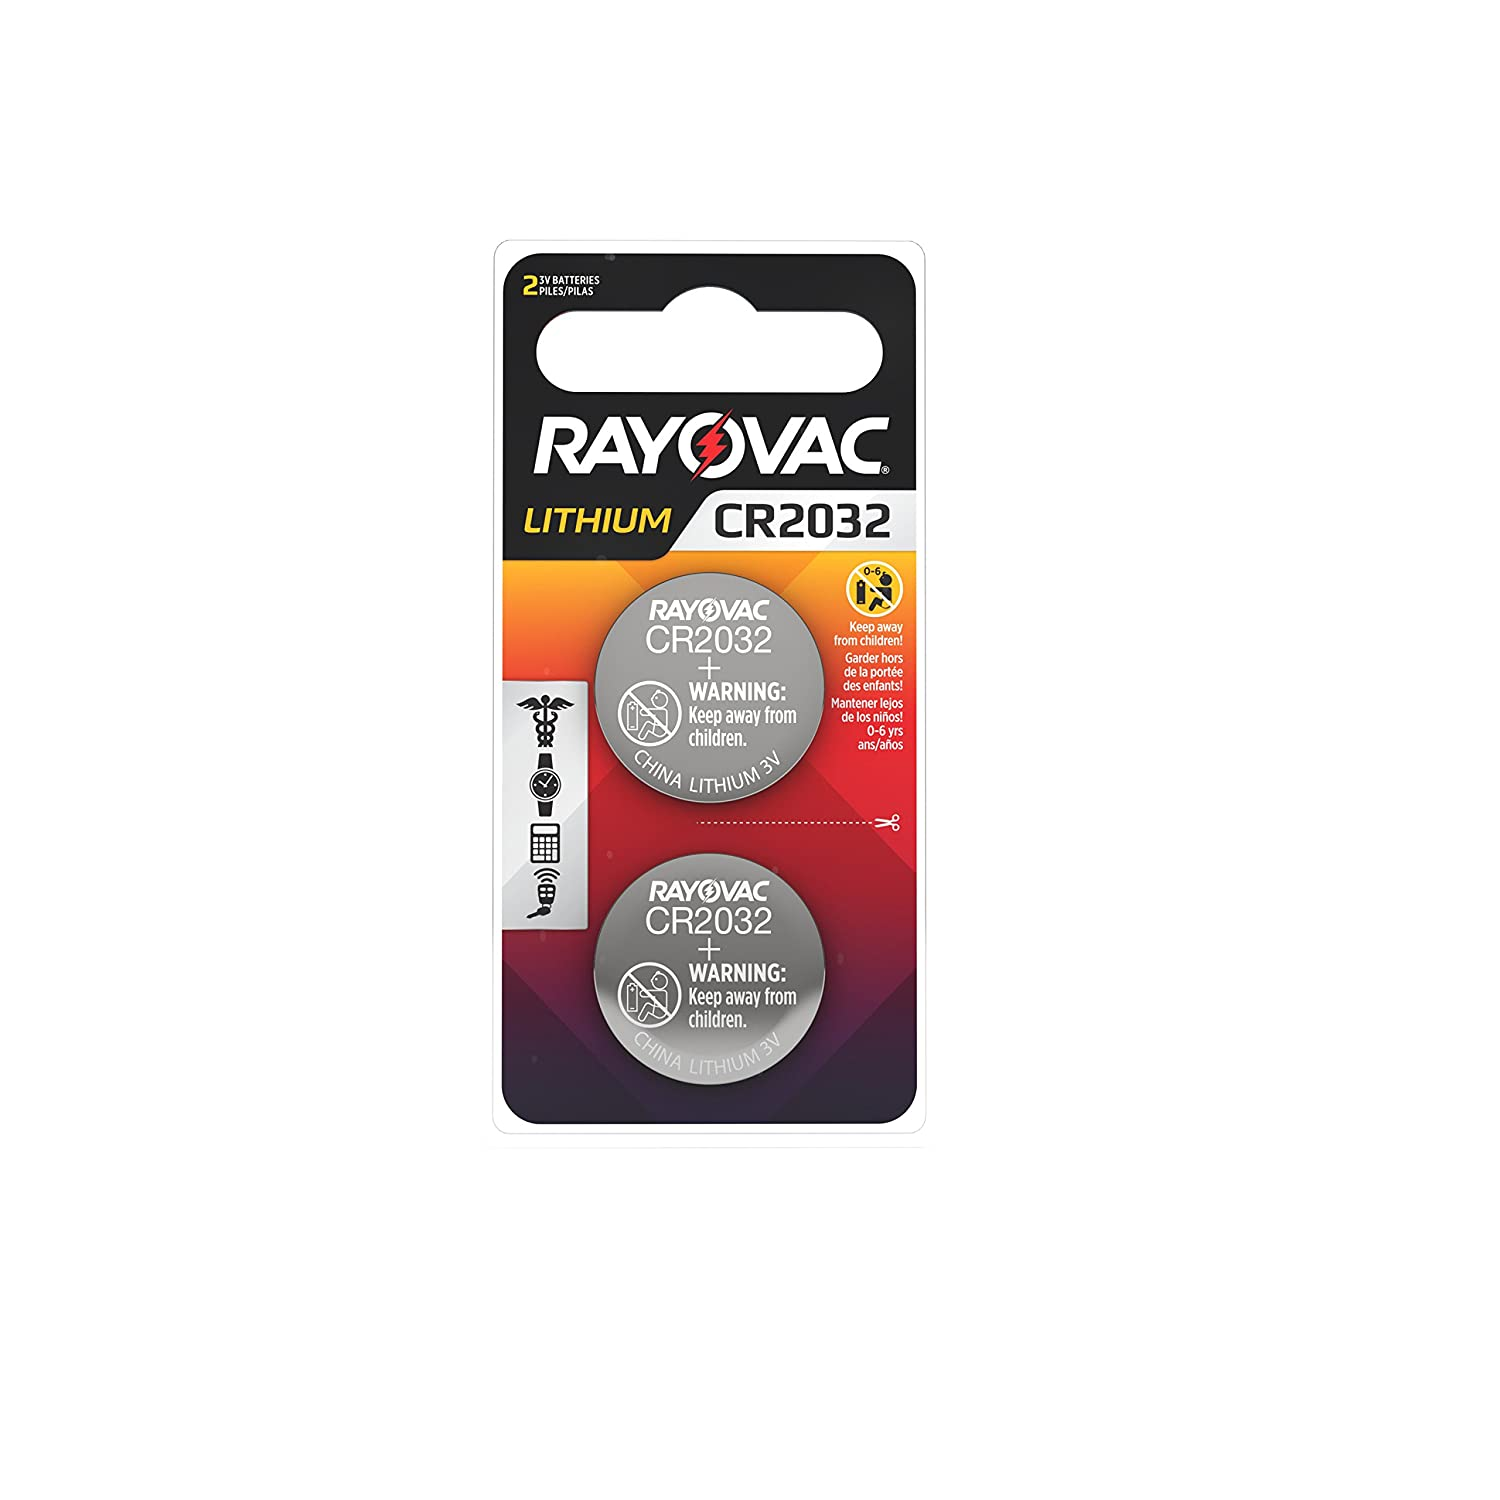 Amazon.com: Rayovac CR2032 Battery, 3V Lithium Coin Cell CR2032 Batteries (2 Battery Count): Home Audio & Theater